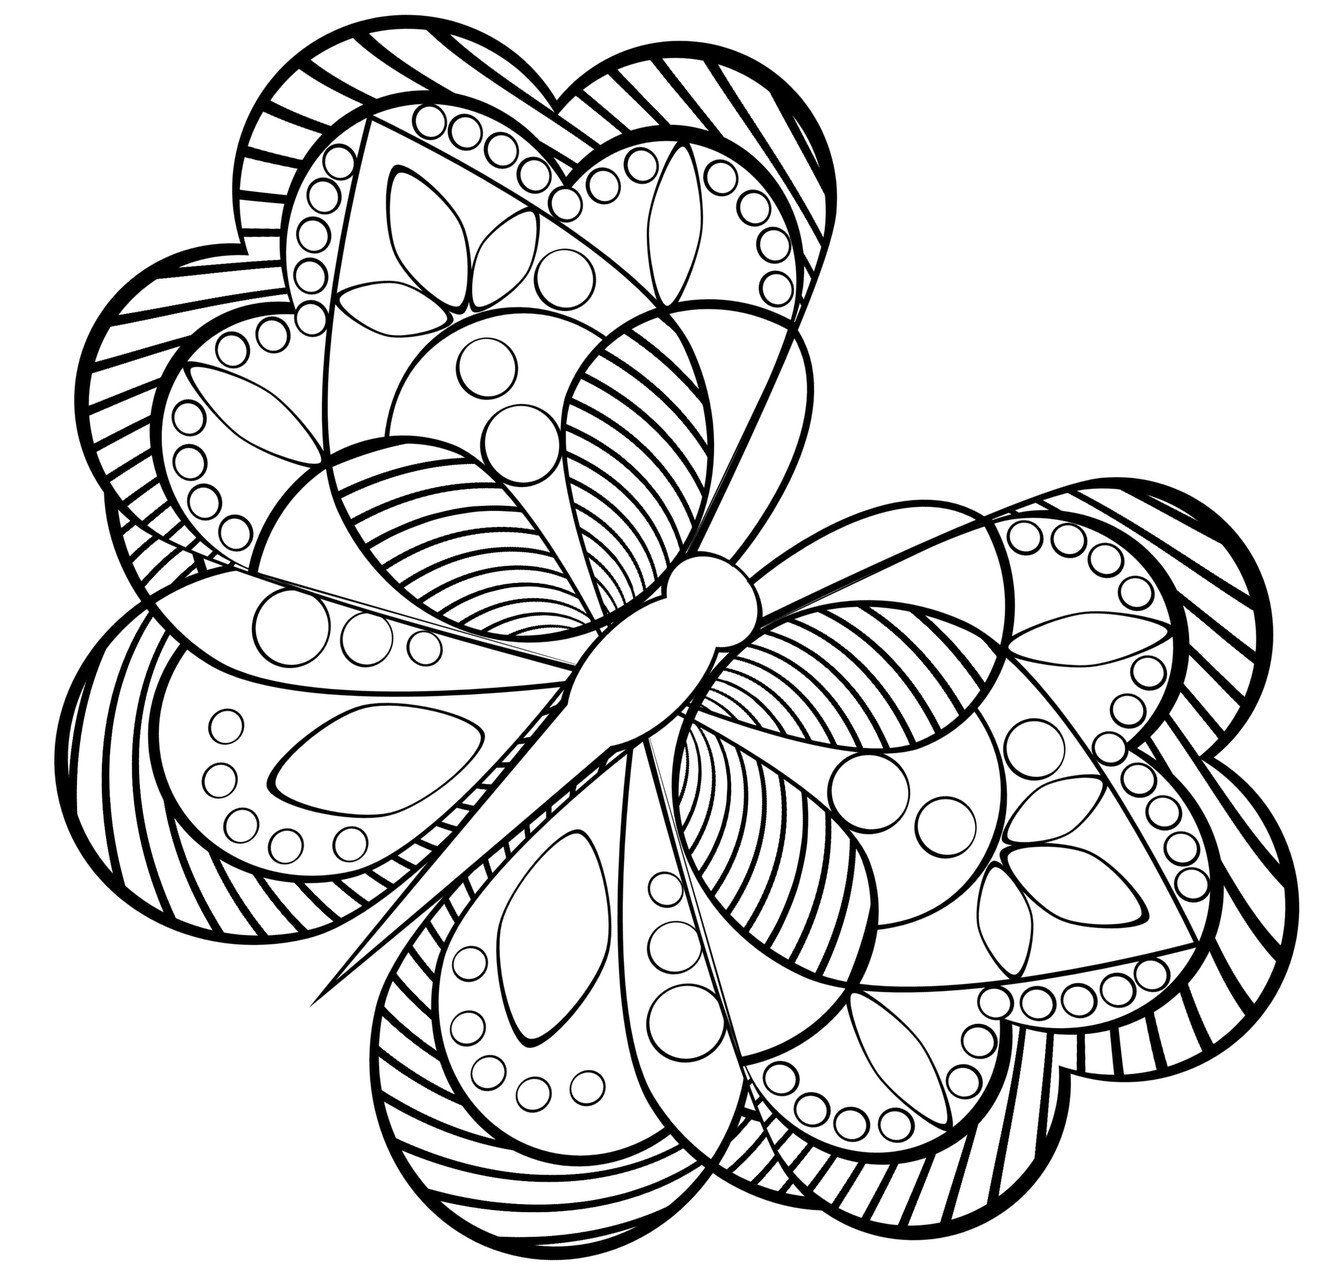 Best ideas about Adult Printable Coloring Pages . Save or Pin Free Coloring Pages For Adults Printable Detailed Image 23 Now.